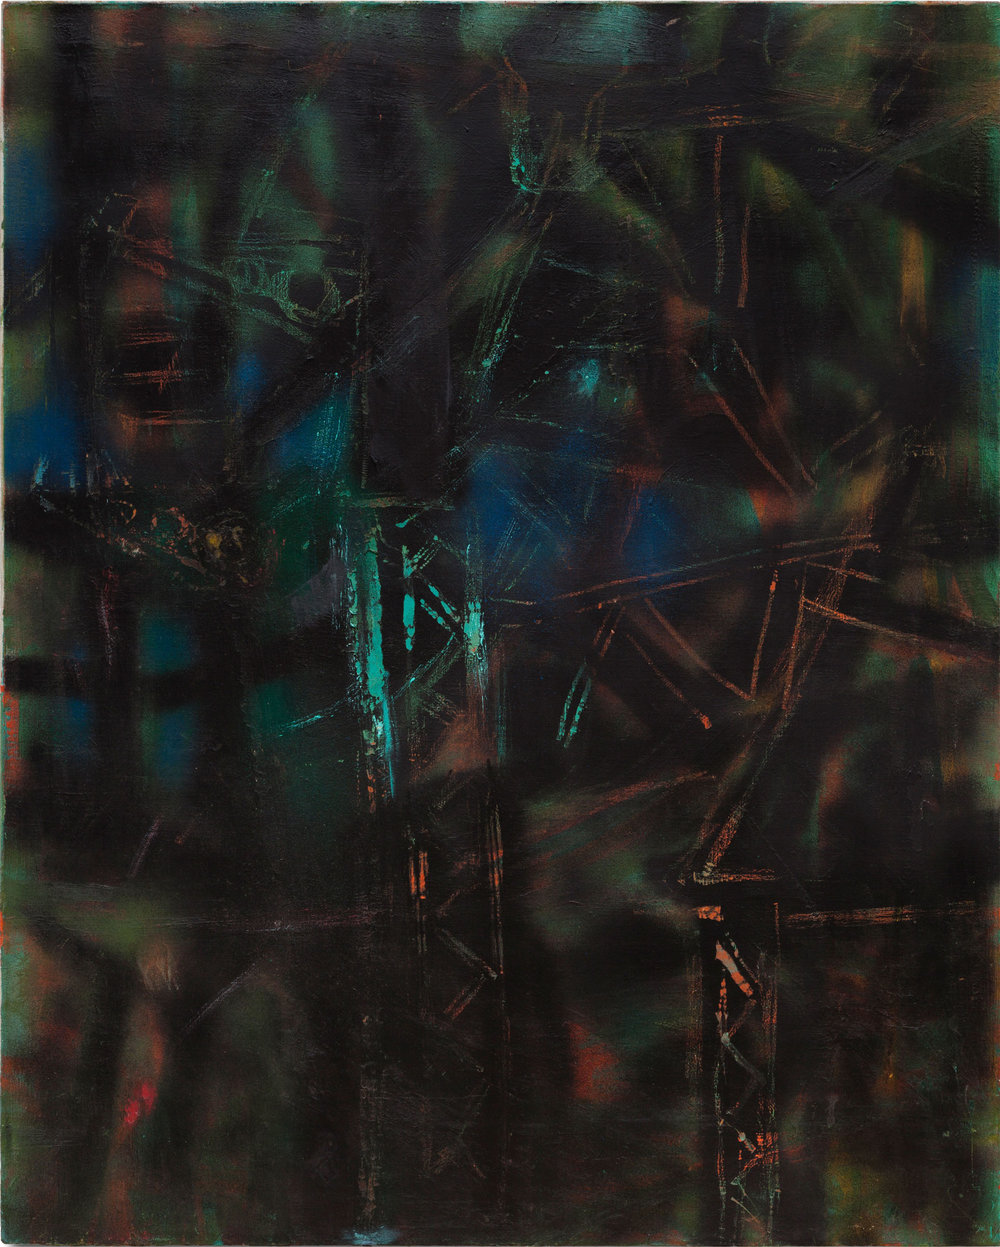 Hedda Sterne,  Untitled , c. 1953, Oil and spray paint on canvas, 42 in. x 34 in.